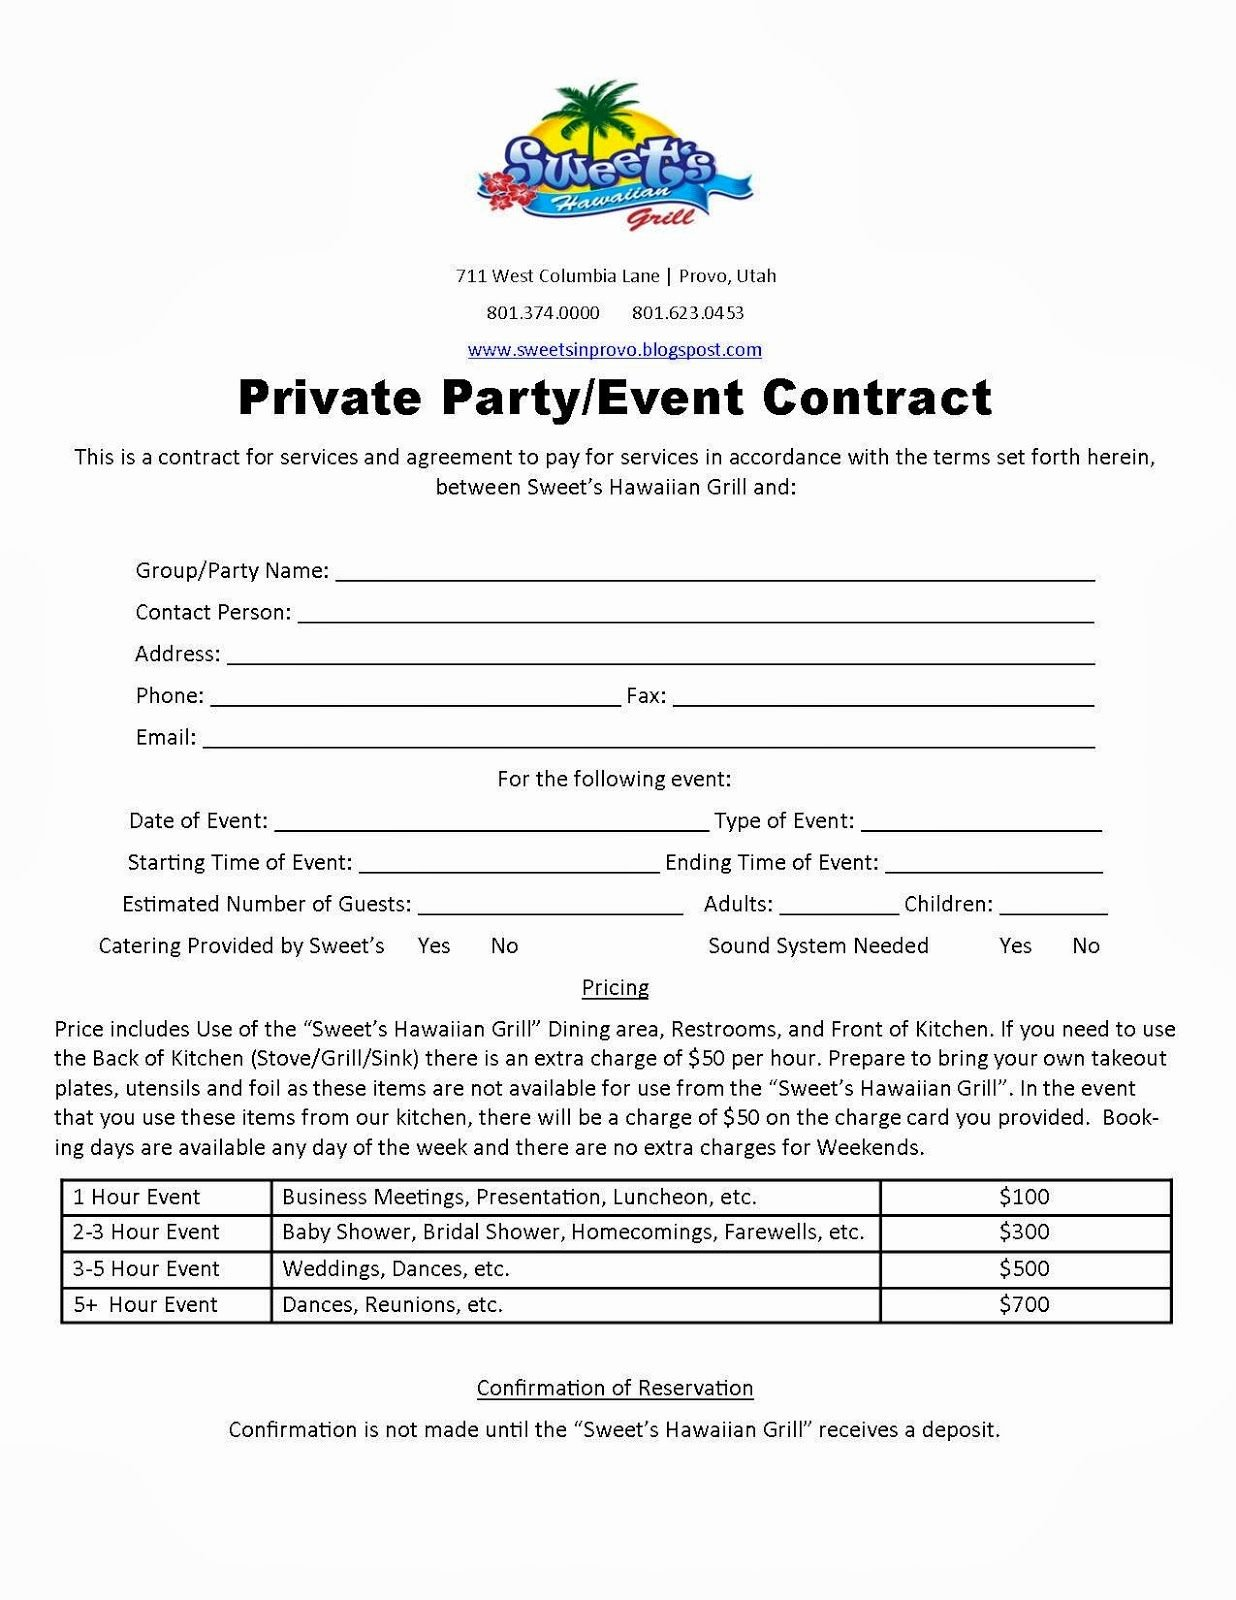 Event Planning Contract Template Unique Party Planner Contract Template Google Search